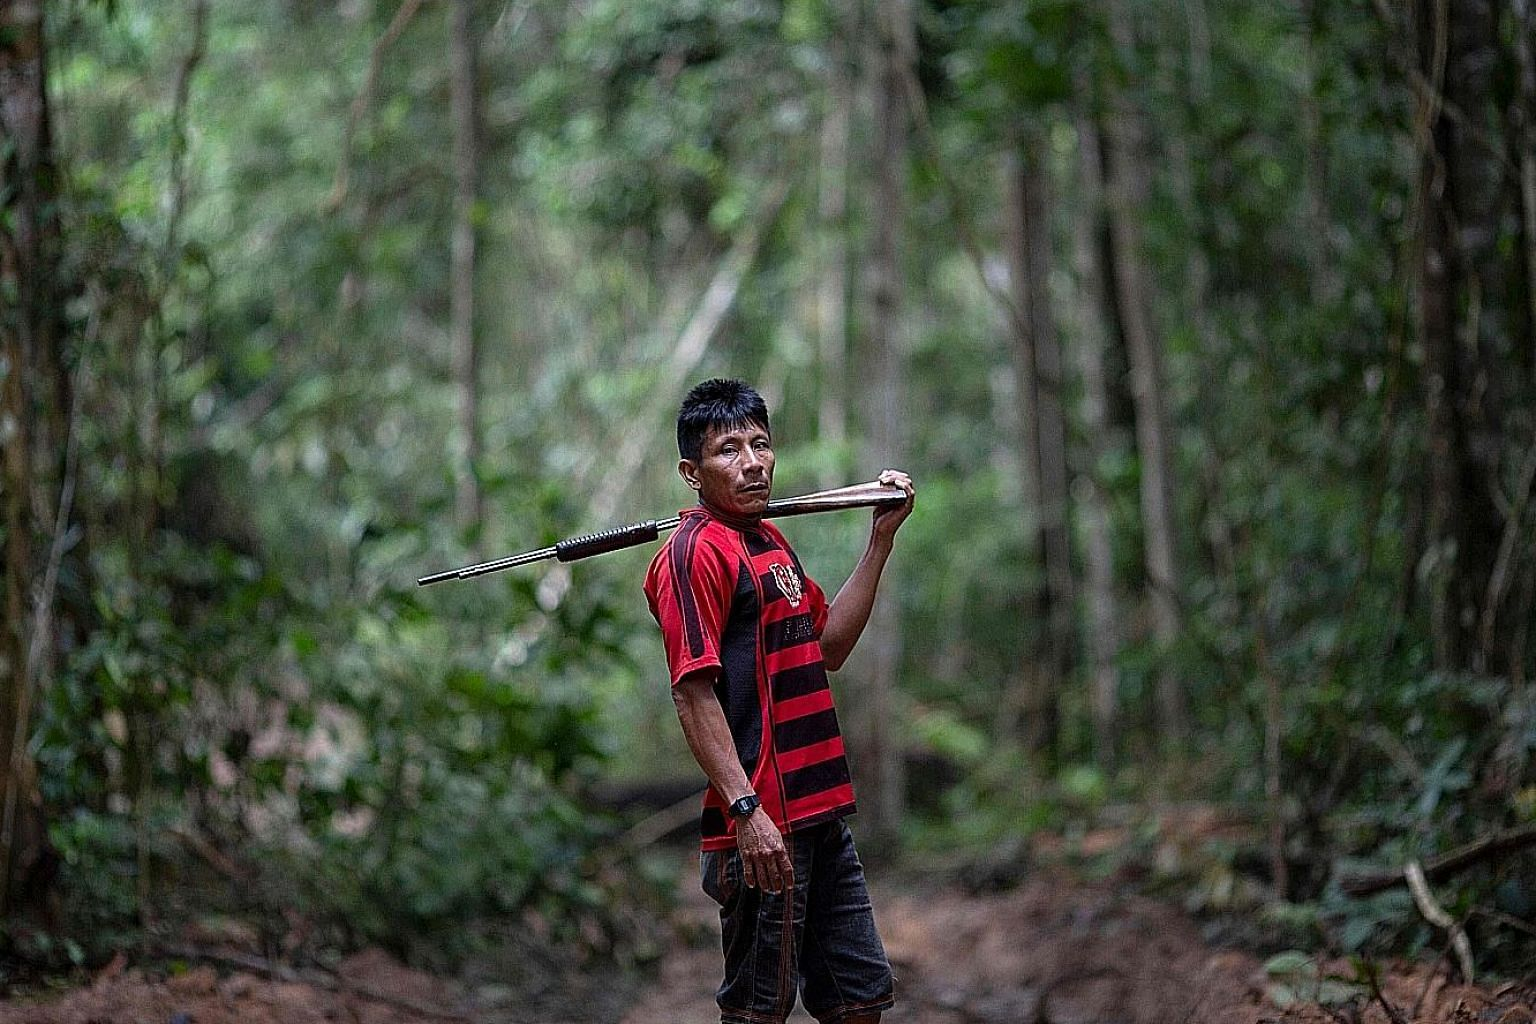 Arara indigenous chief Tatji Arara patrolling the Arara indigenous land in Para state, Brazil, last month. He says illegal logging on these lands - an area equivalent to 264,000 football fields - has intensified since President Jair Bolsonaro came to